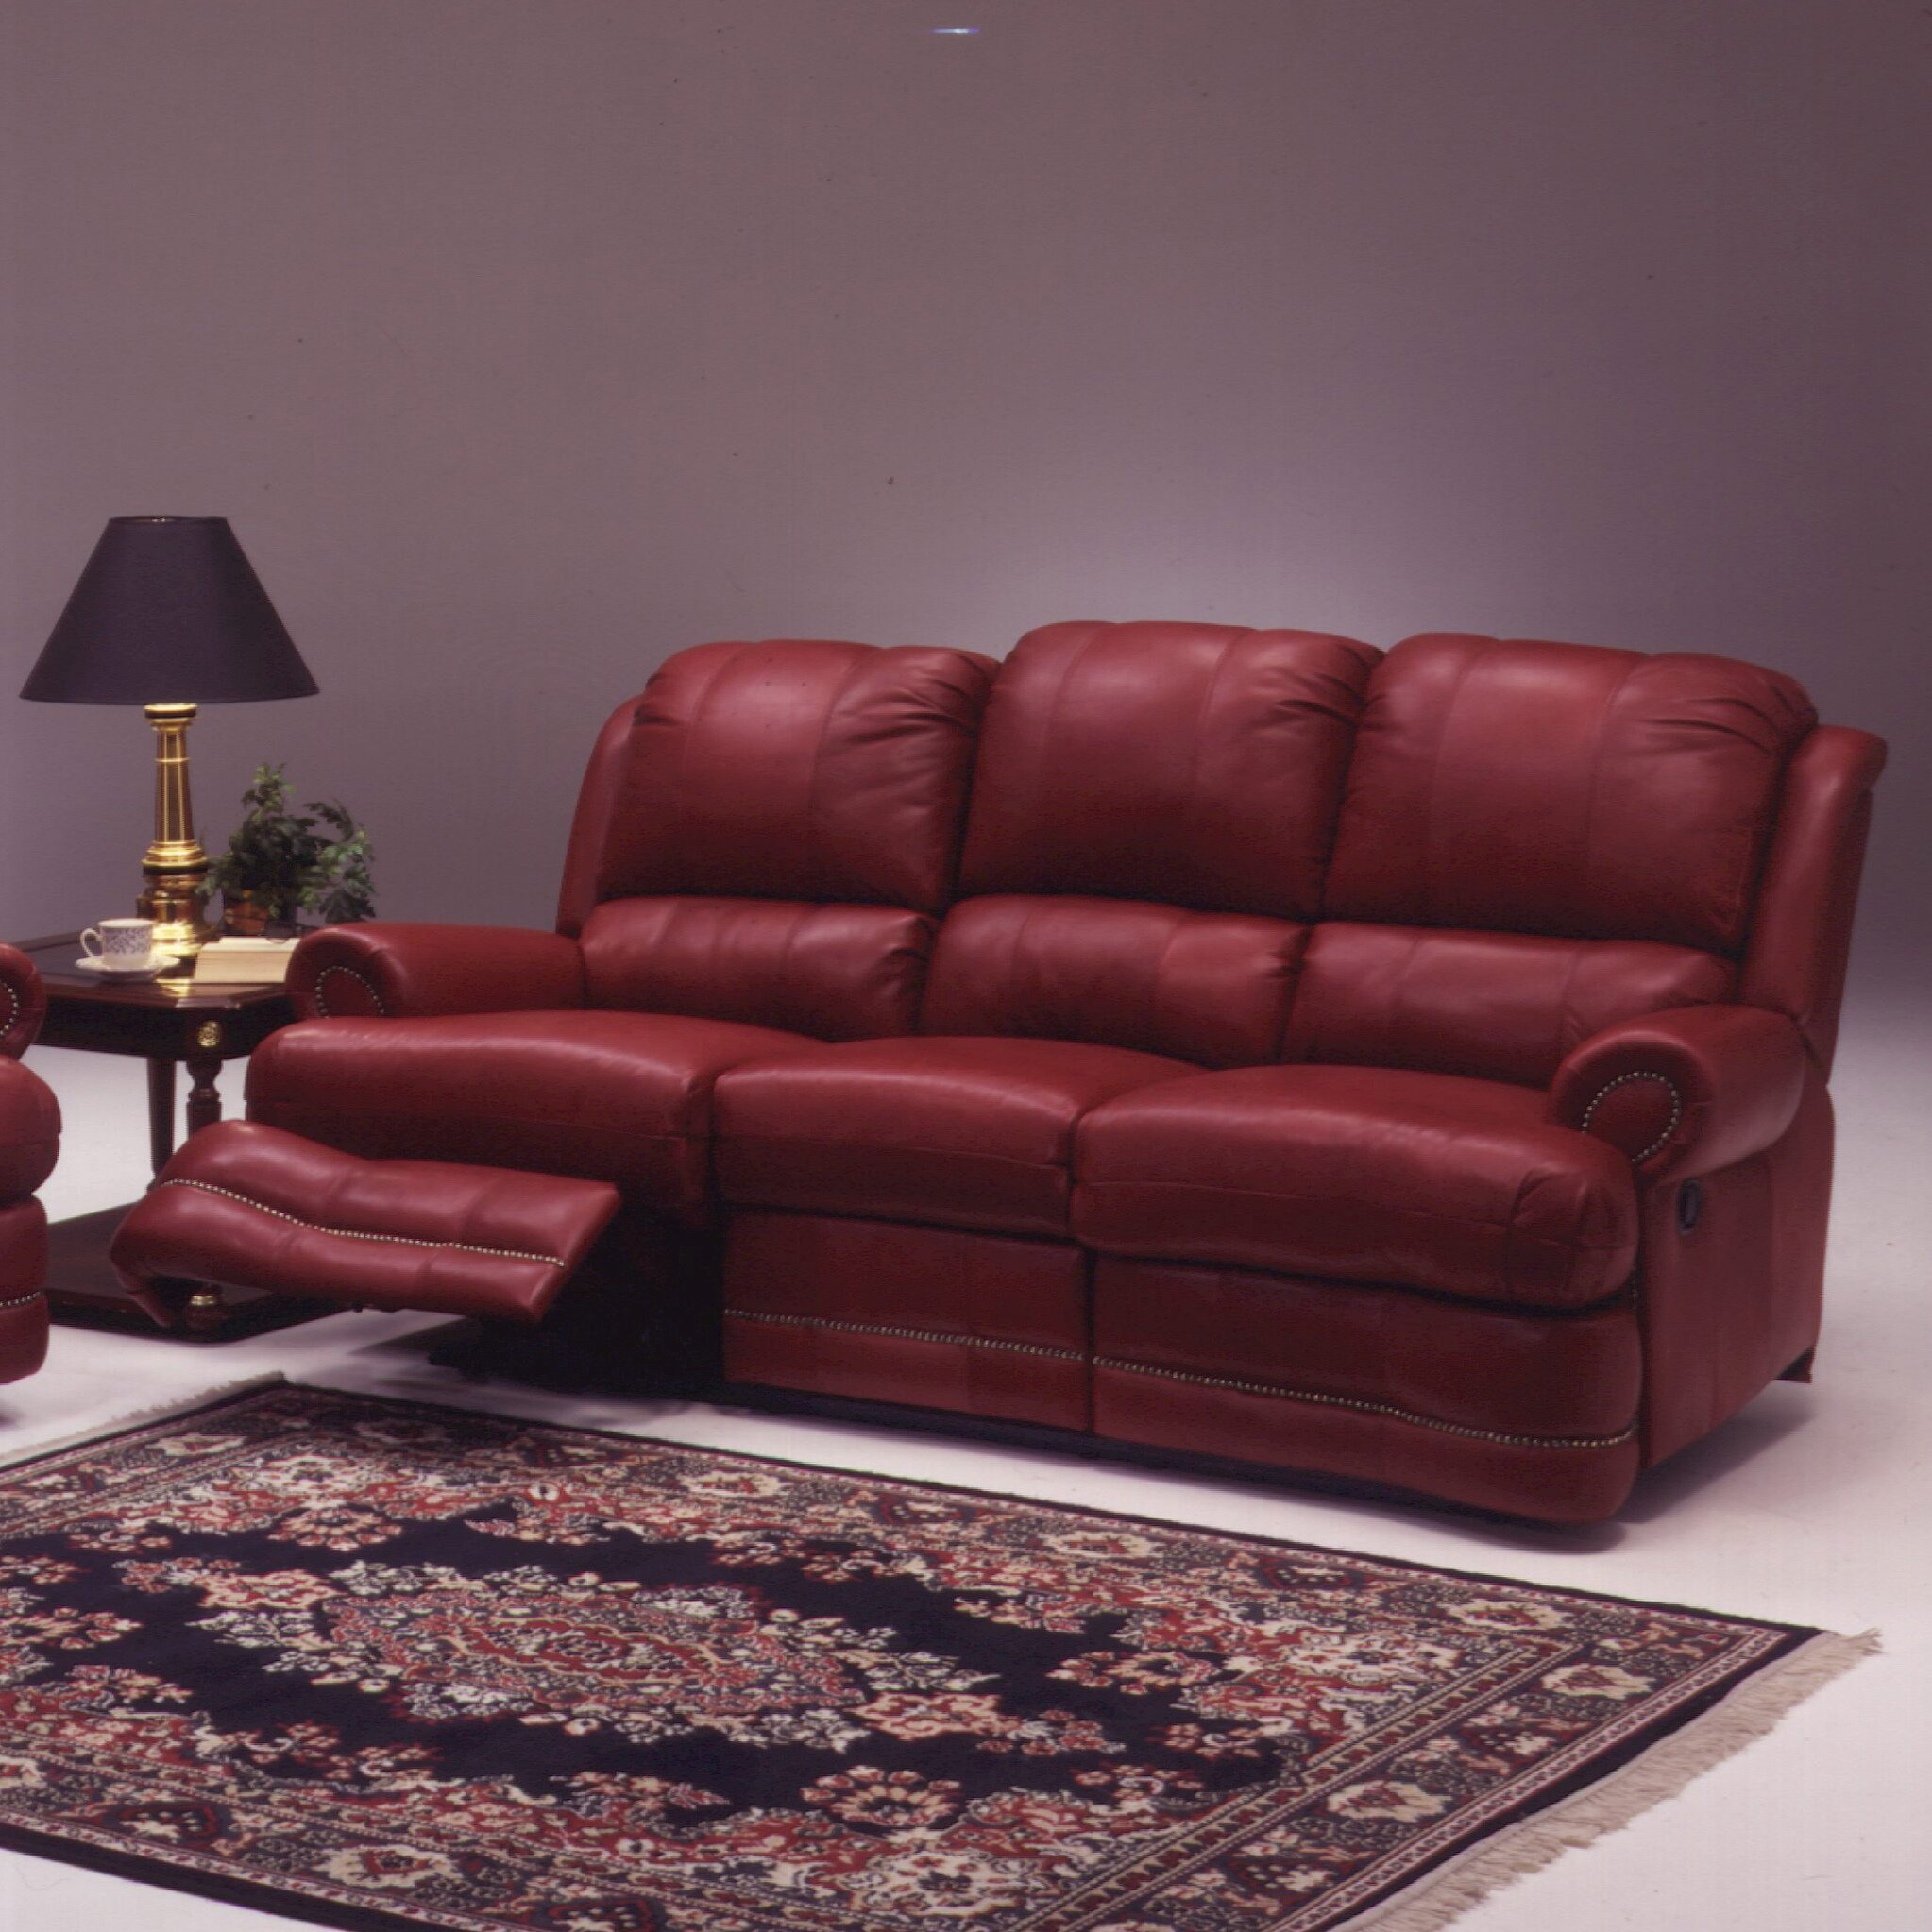 Omnia Leather Morgan Leather Reclining Sofa Reviews